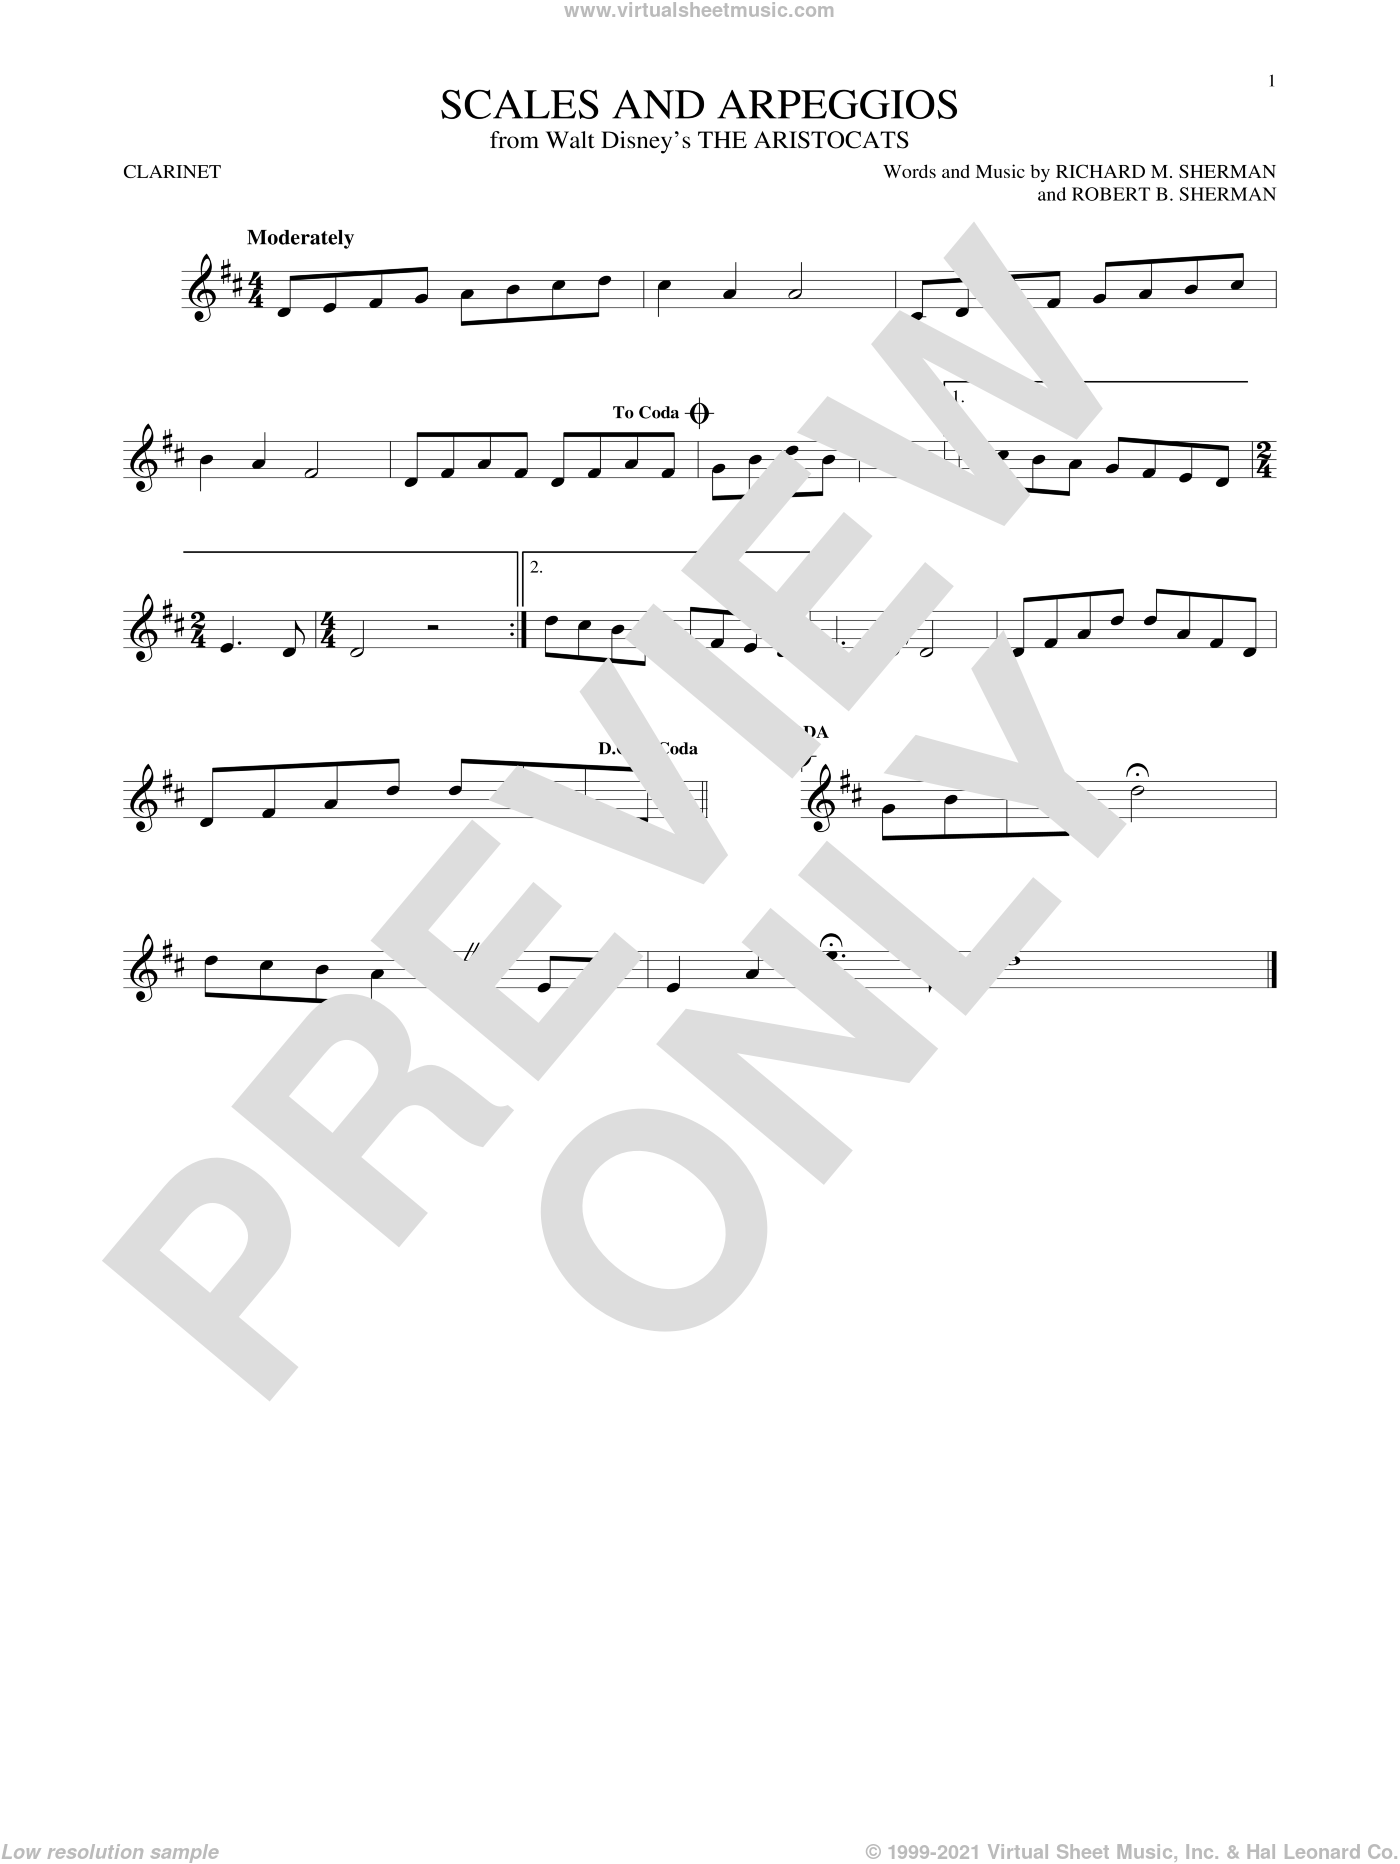 Scales And Arpeggios sheet music for clarinet solo by Robert B. Sherman